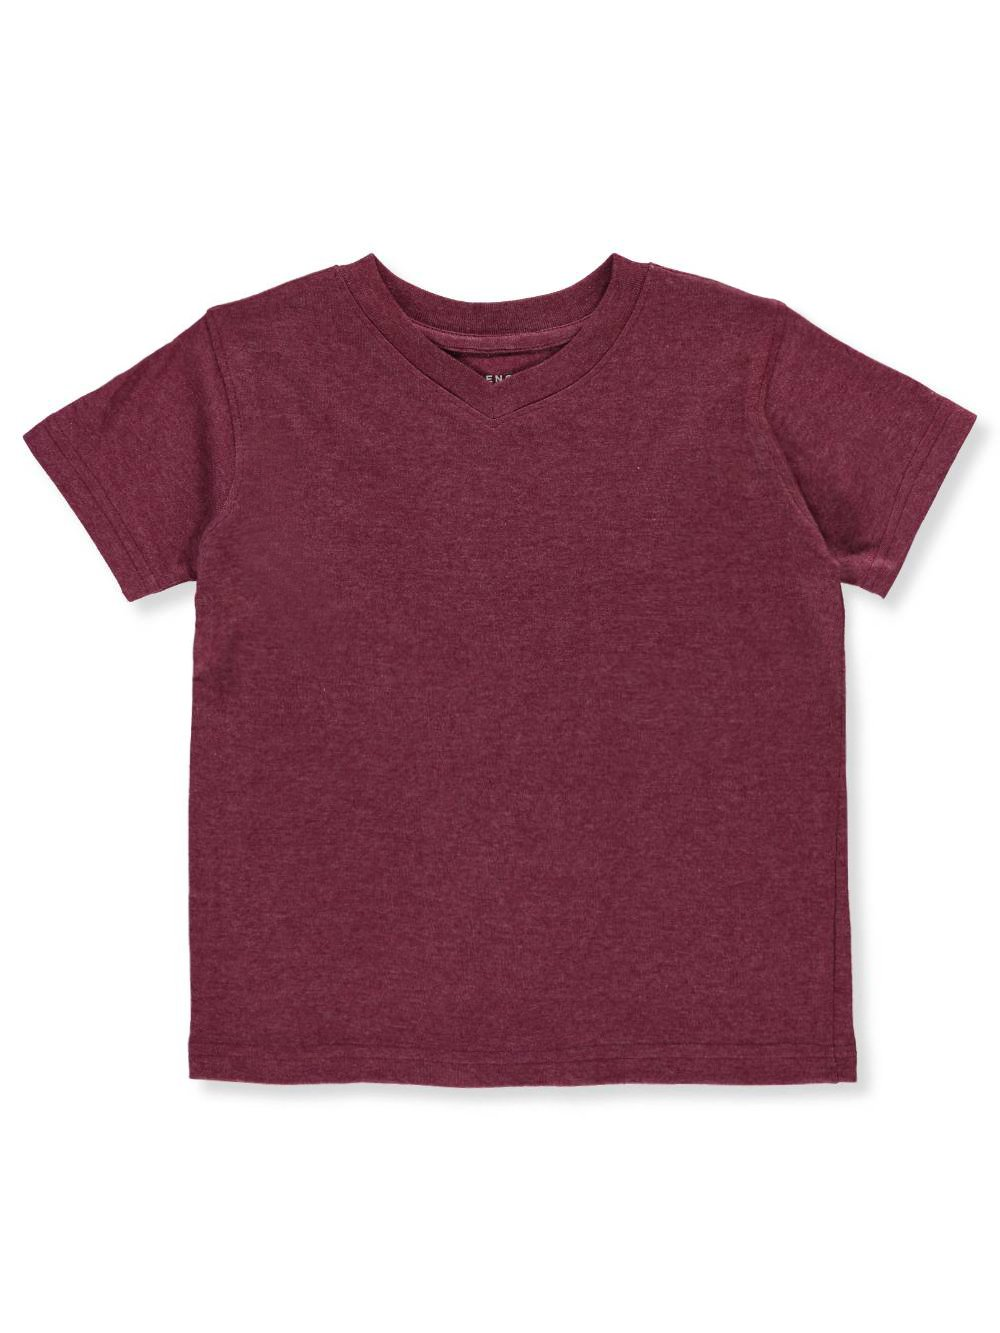 French Toast Little Boys' T-Shirt - deep red, 4